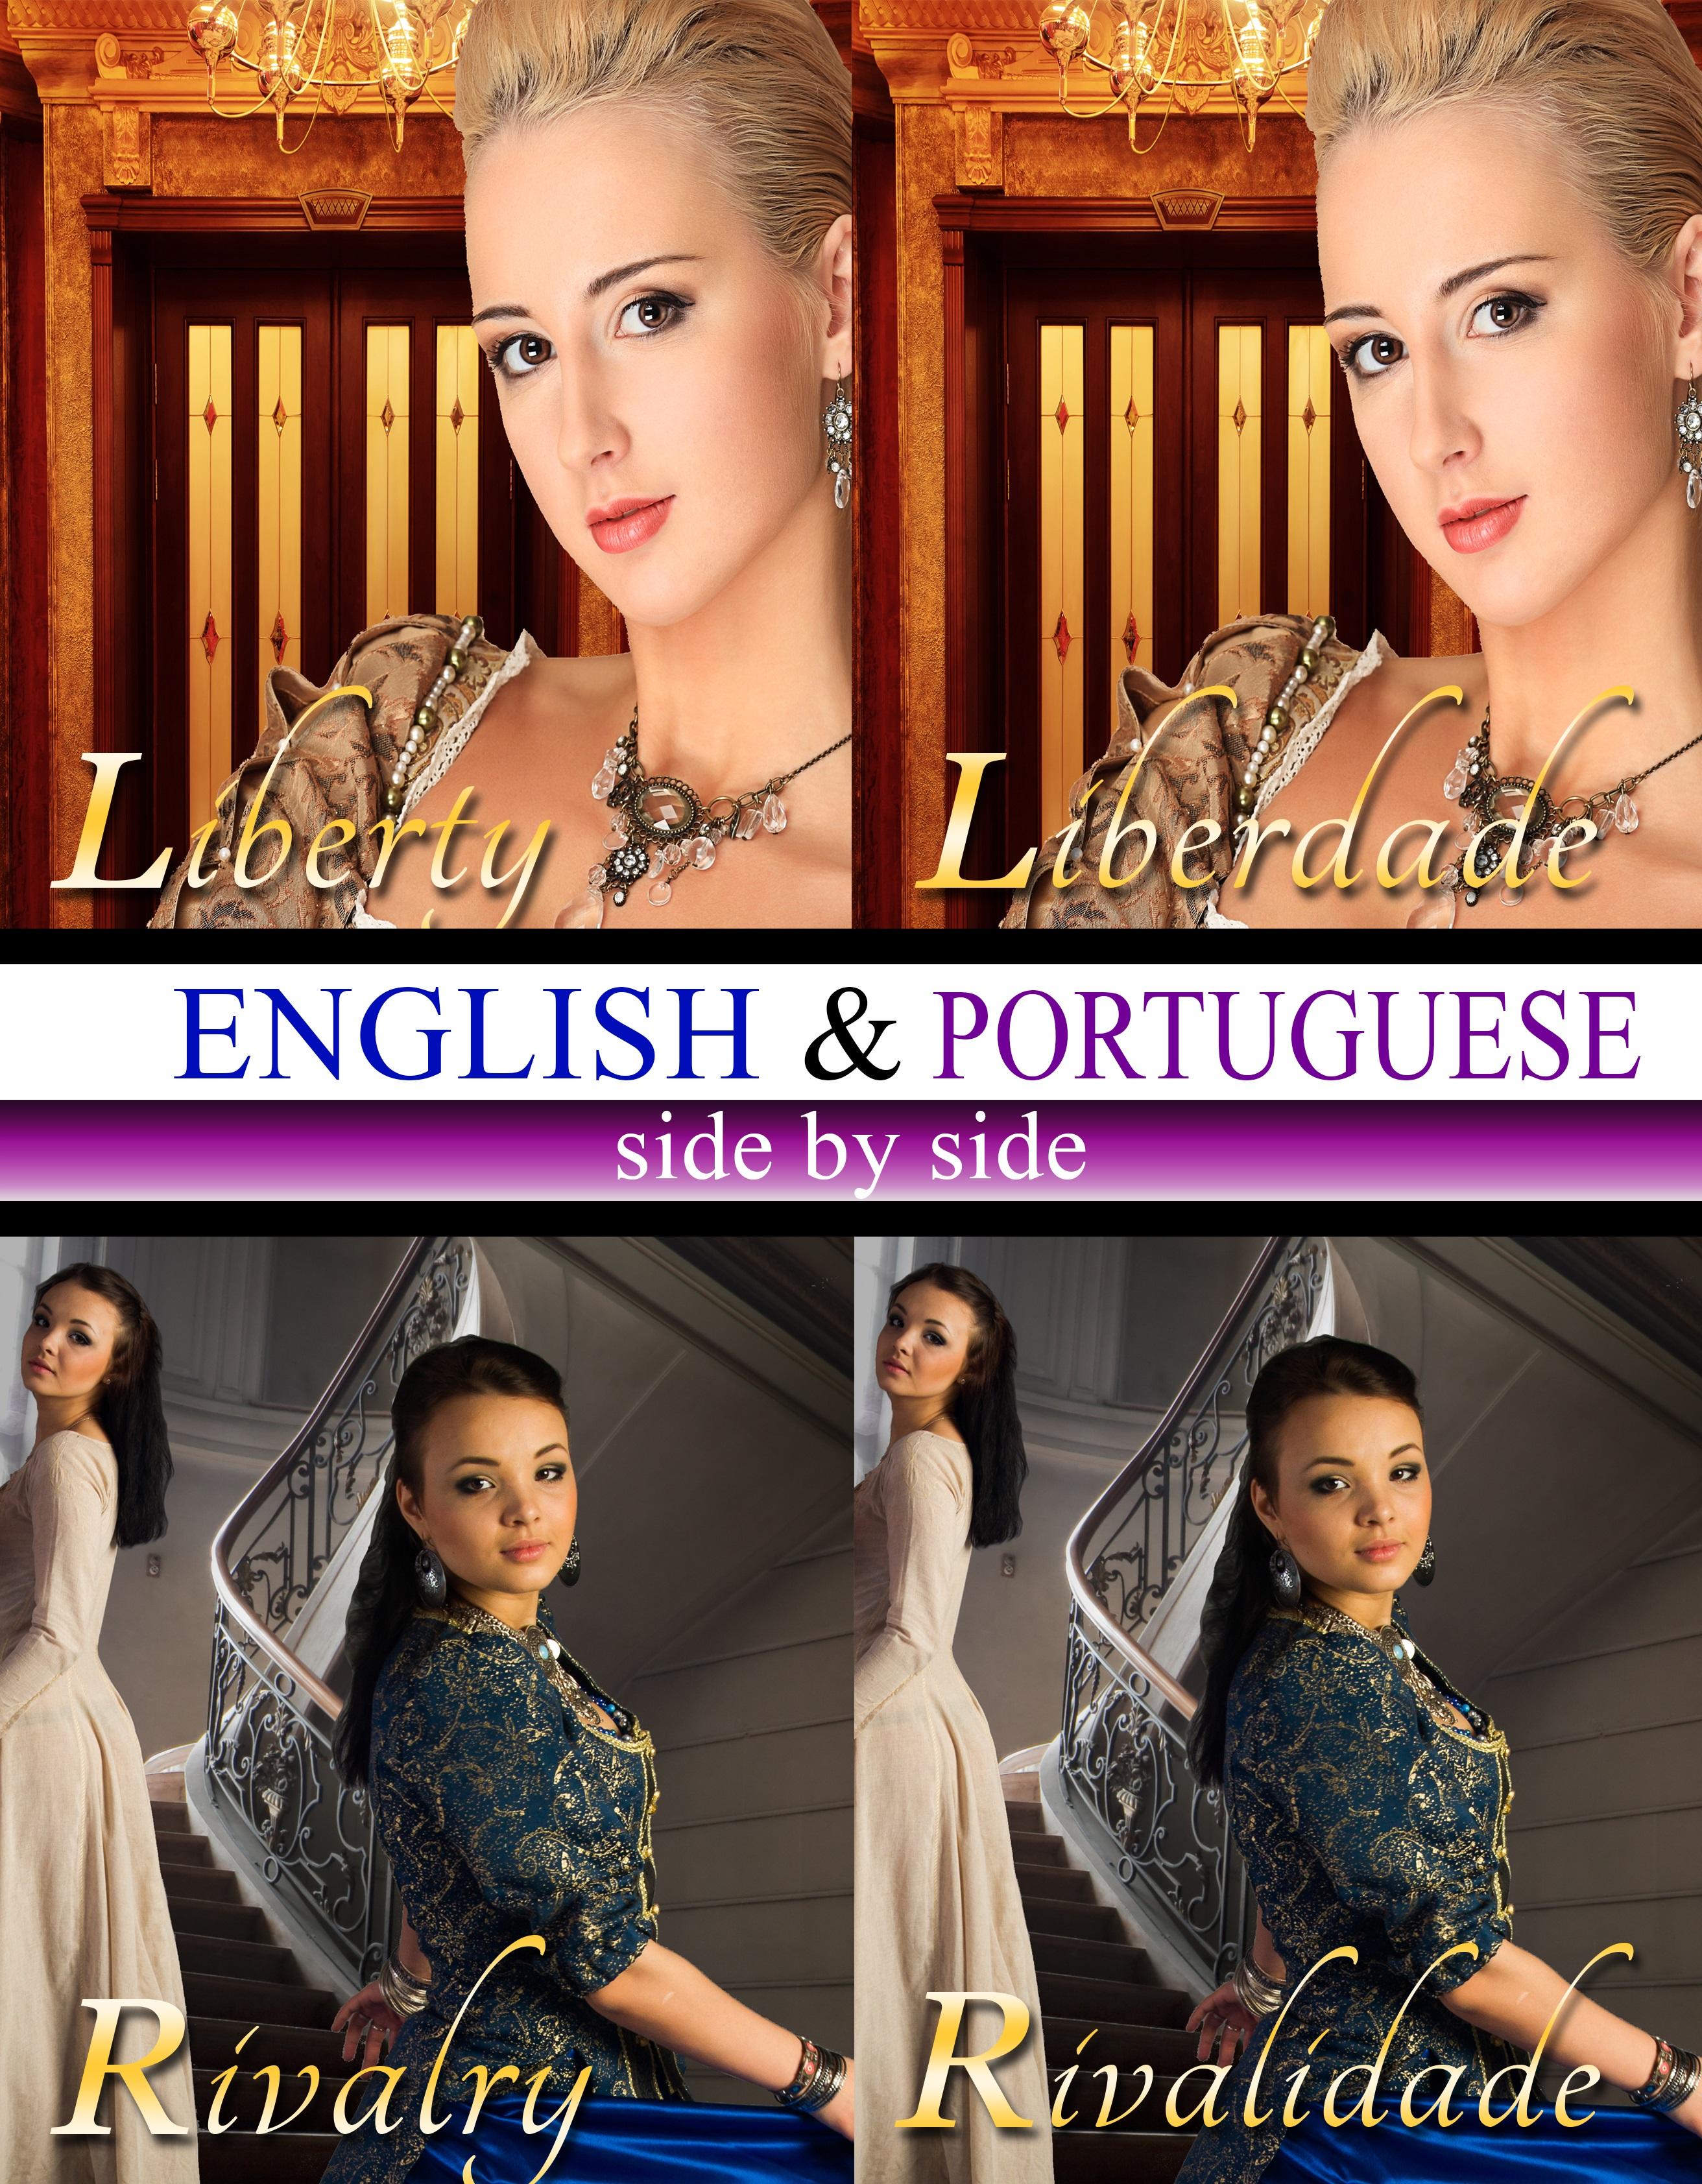 English & portuguese side by side